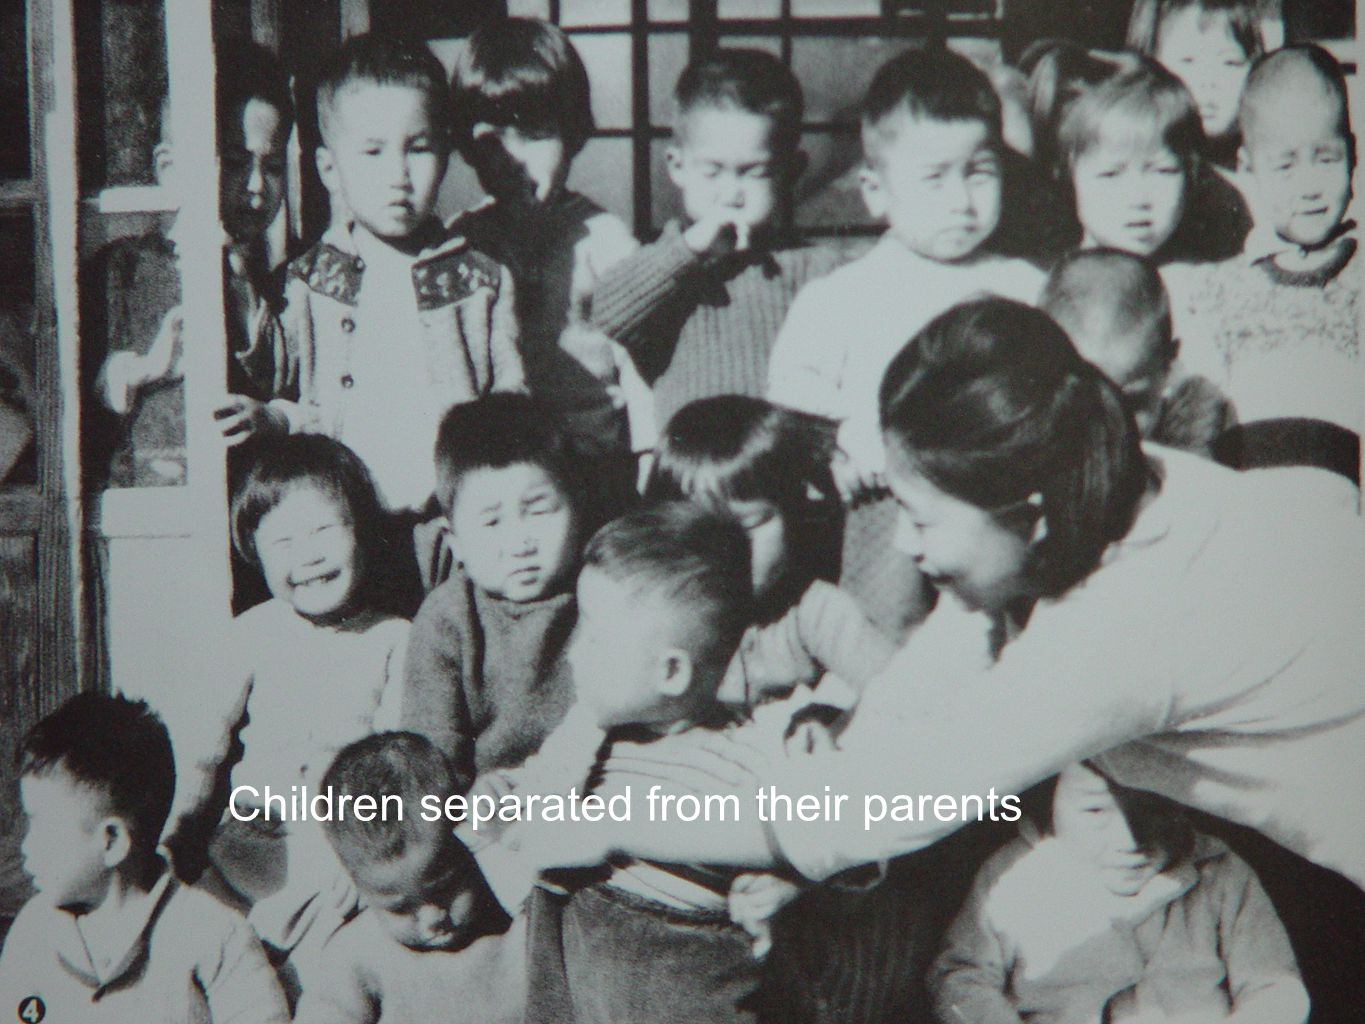 Children separated from their parents